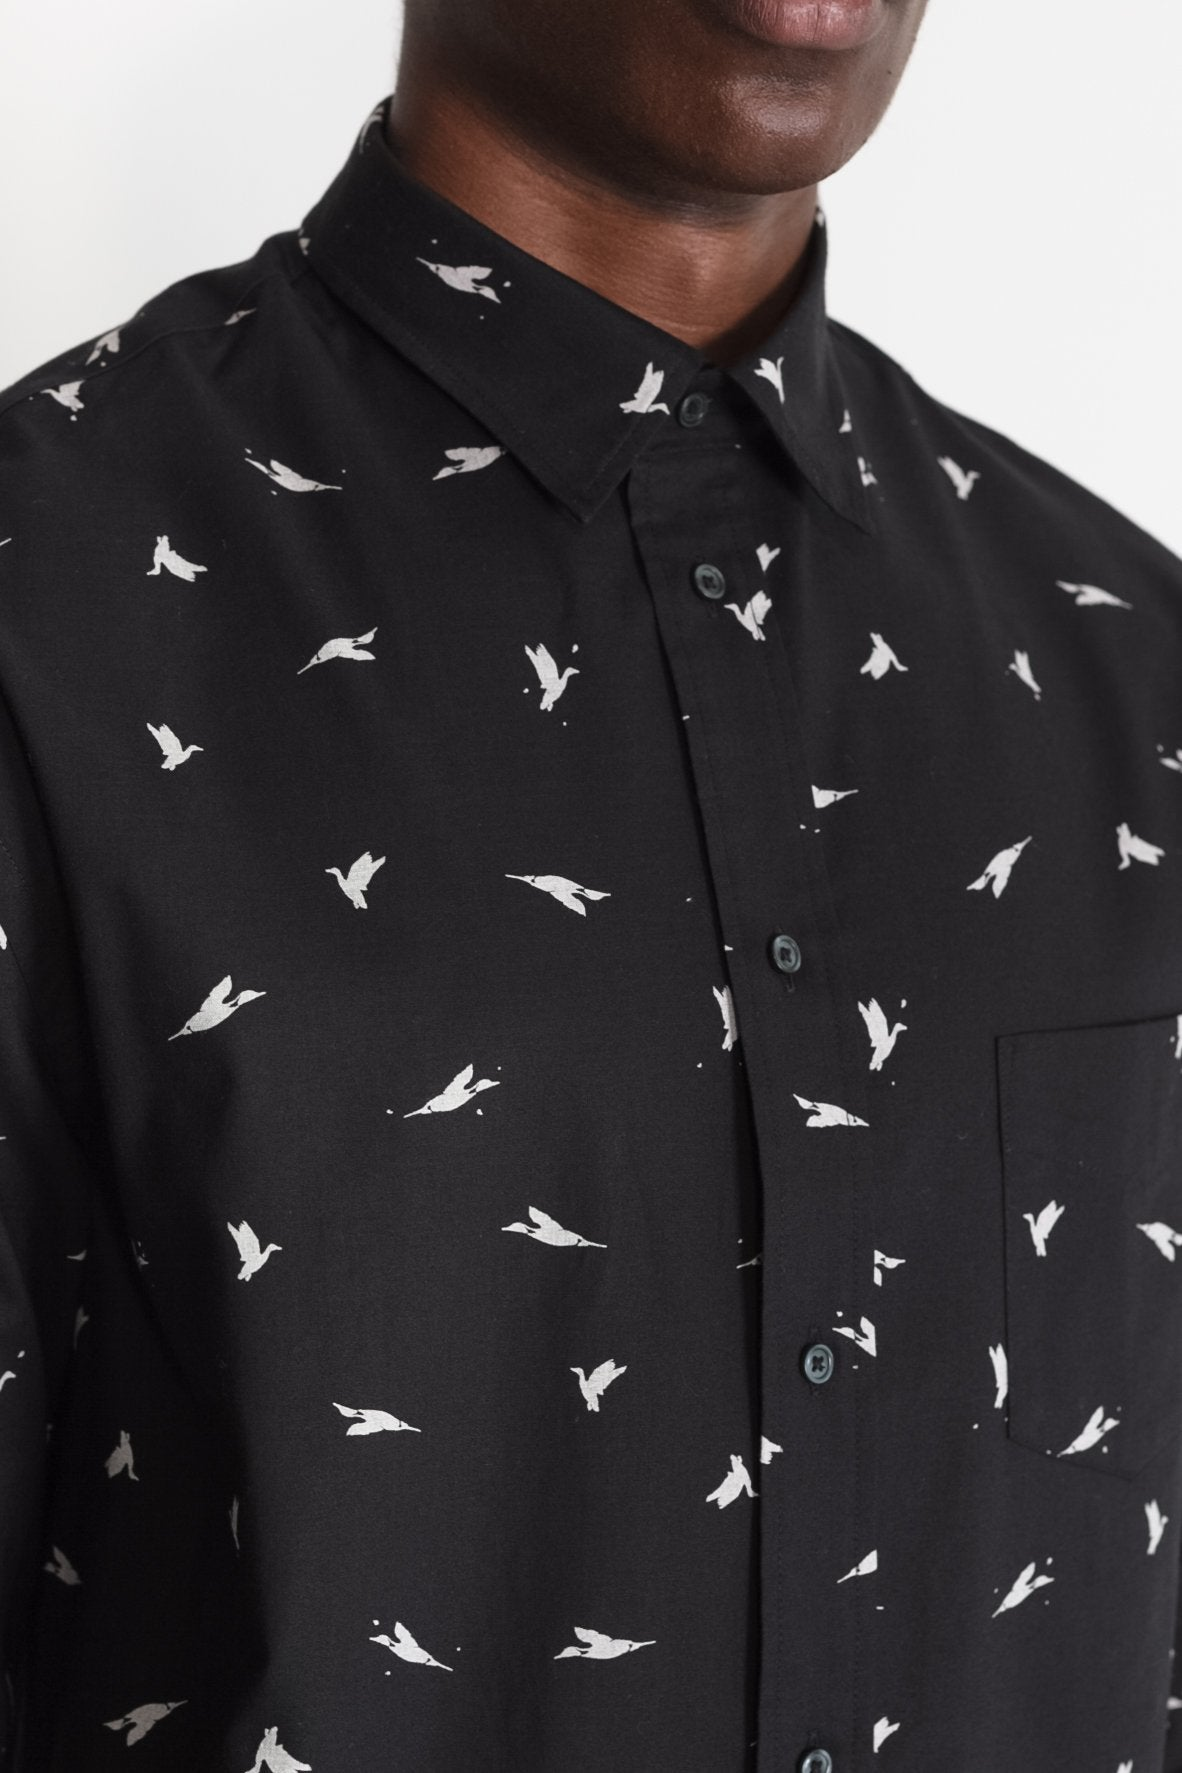 Japanese Bird Print in Black 03